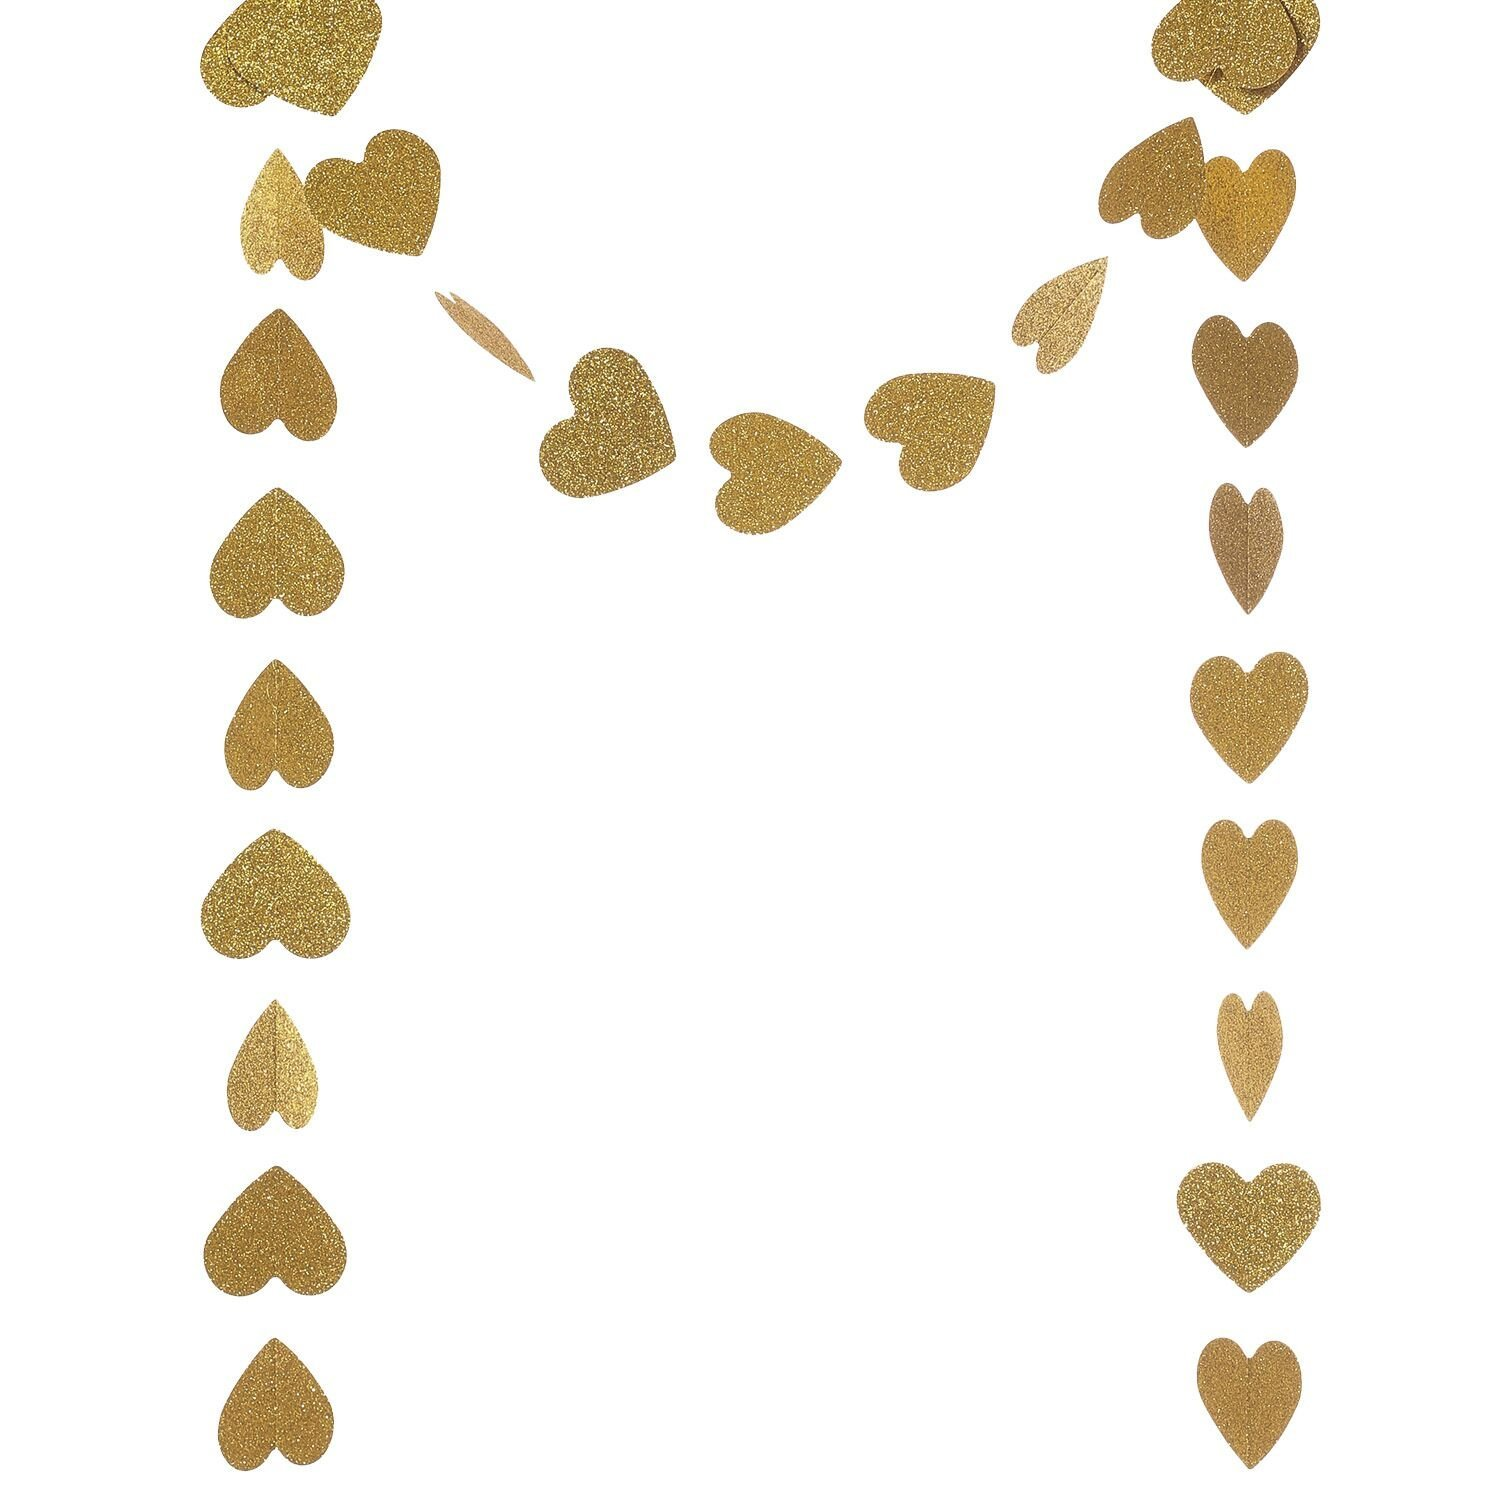 Ling's moment Paper Heart Garland (Gold Glitter), Hearts Hanging Decorations for Wedding, Baby Shower, Festival Items & Party Props, 8.5 Feet Long